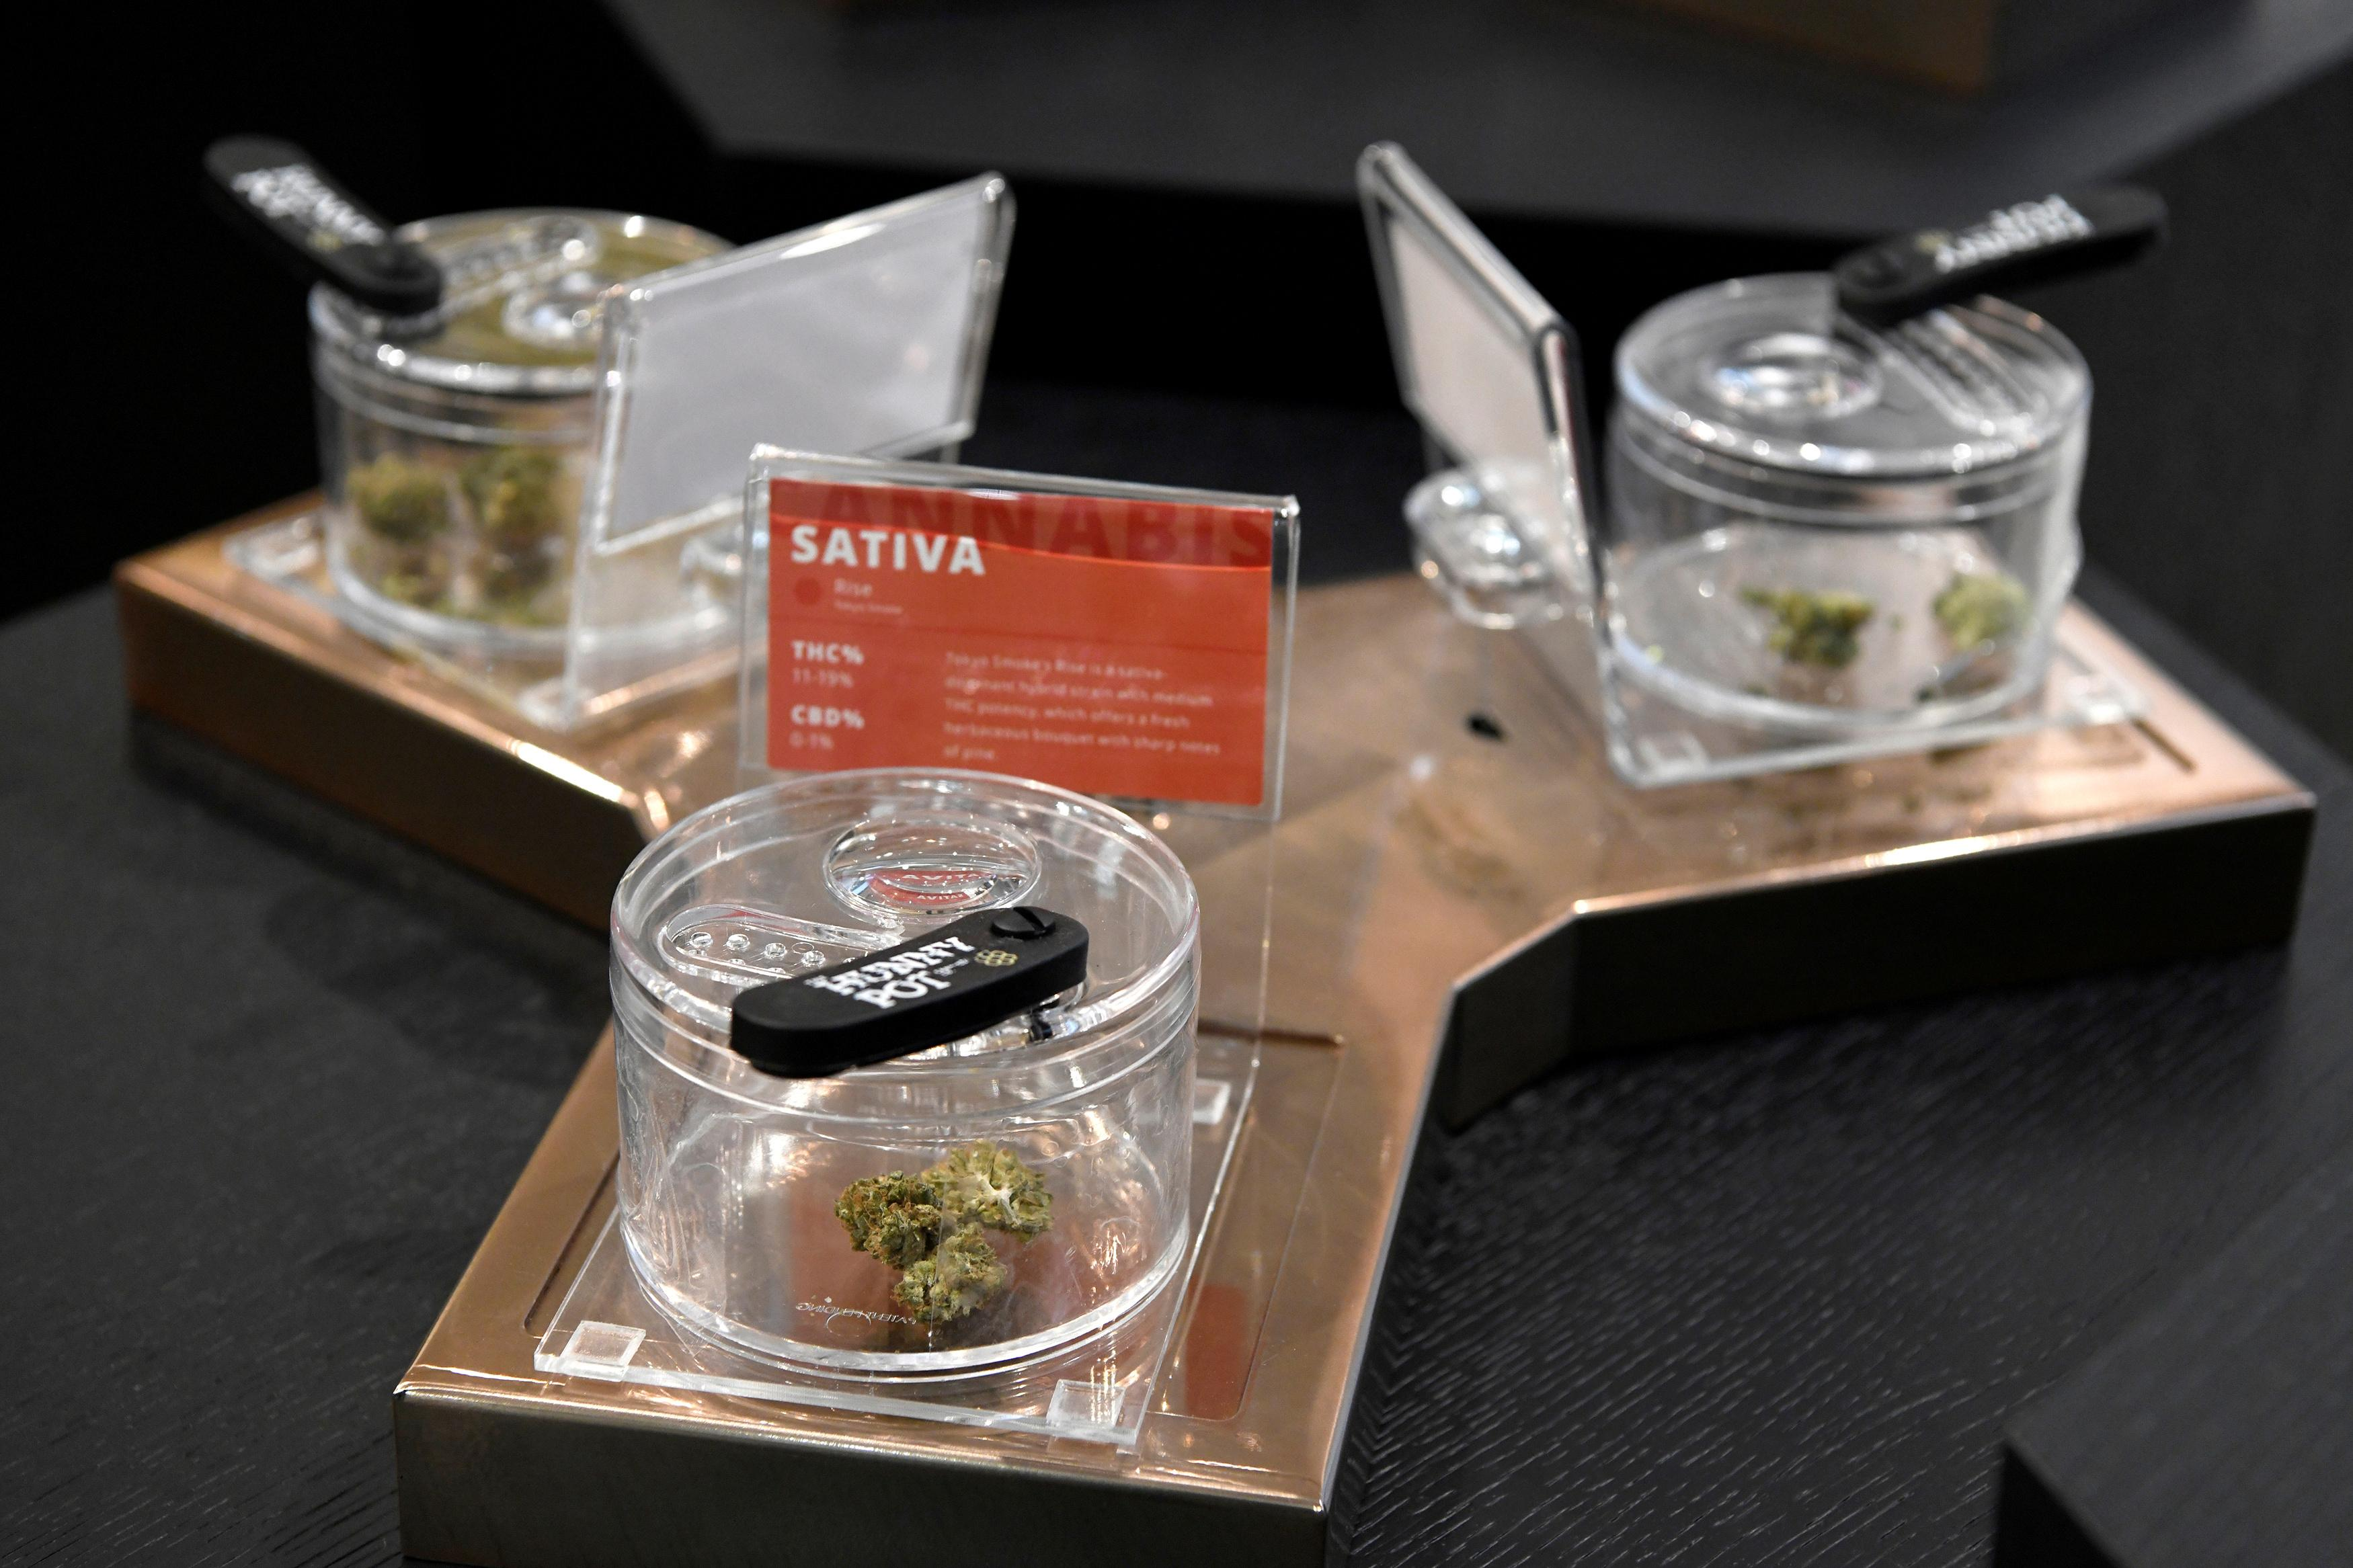 As 'Cannabis 2.0' kicks off in Canada, industry strangled by...